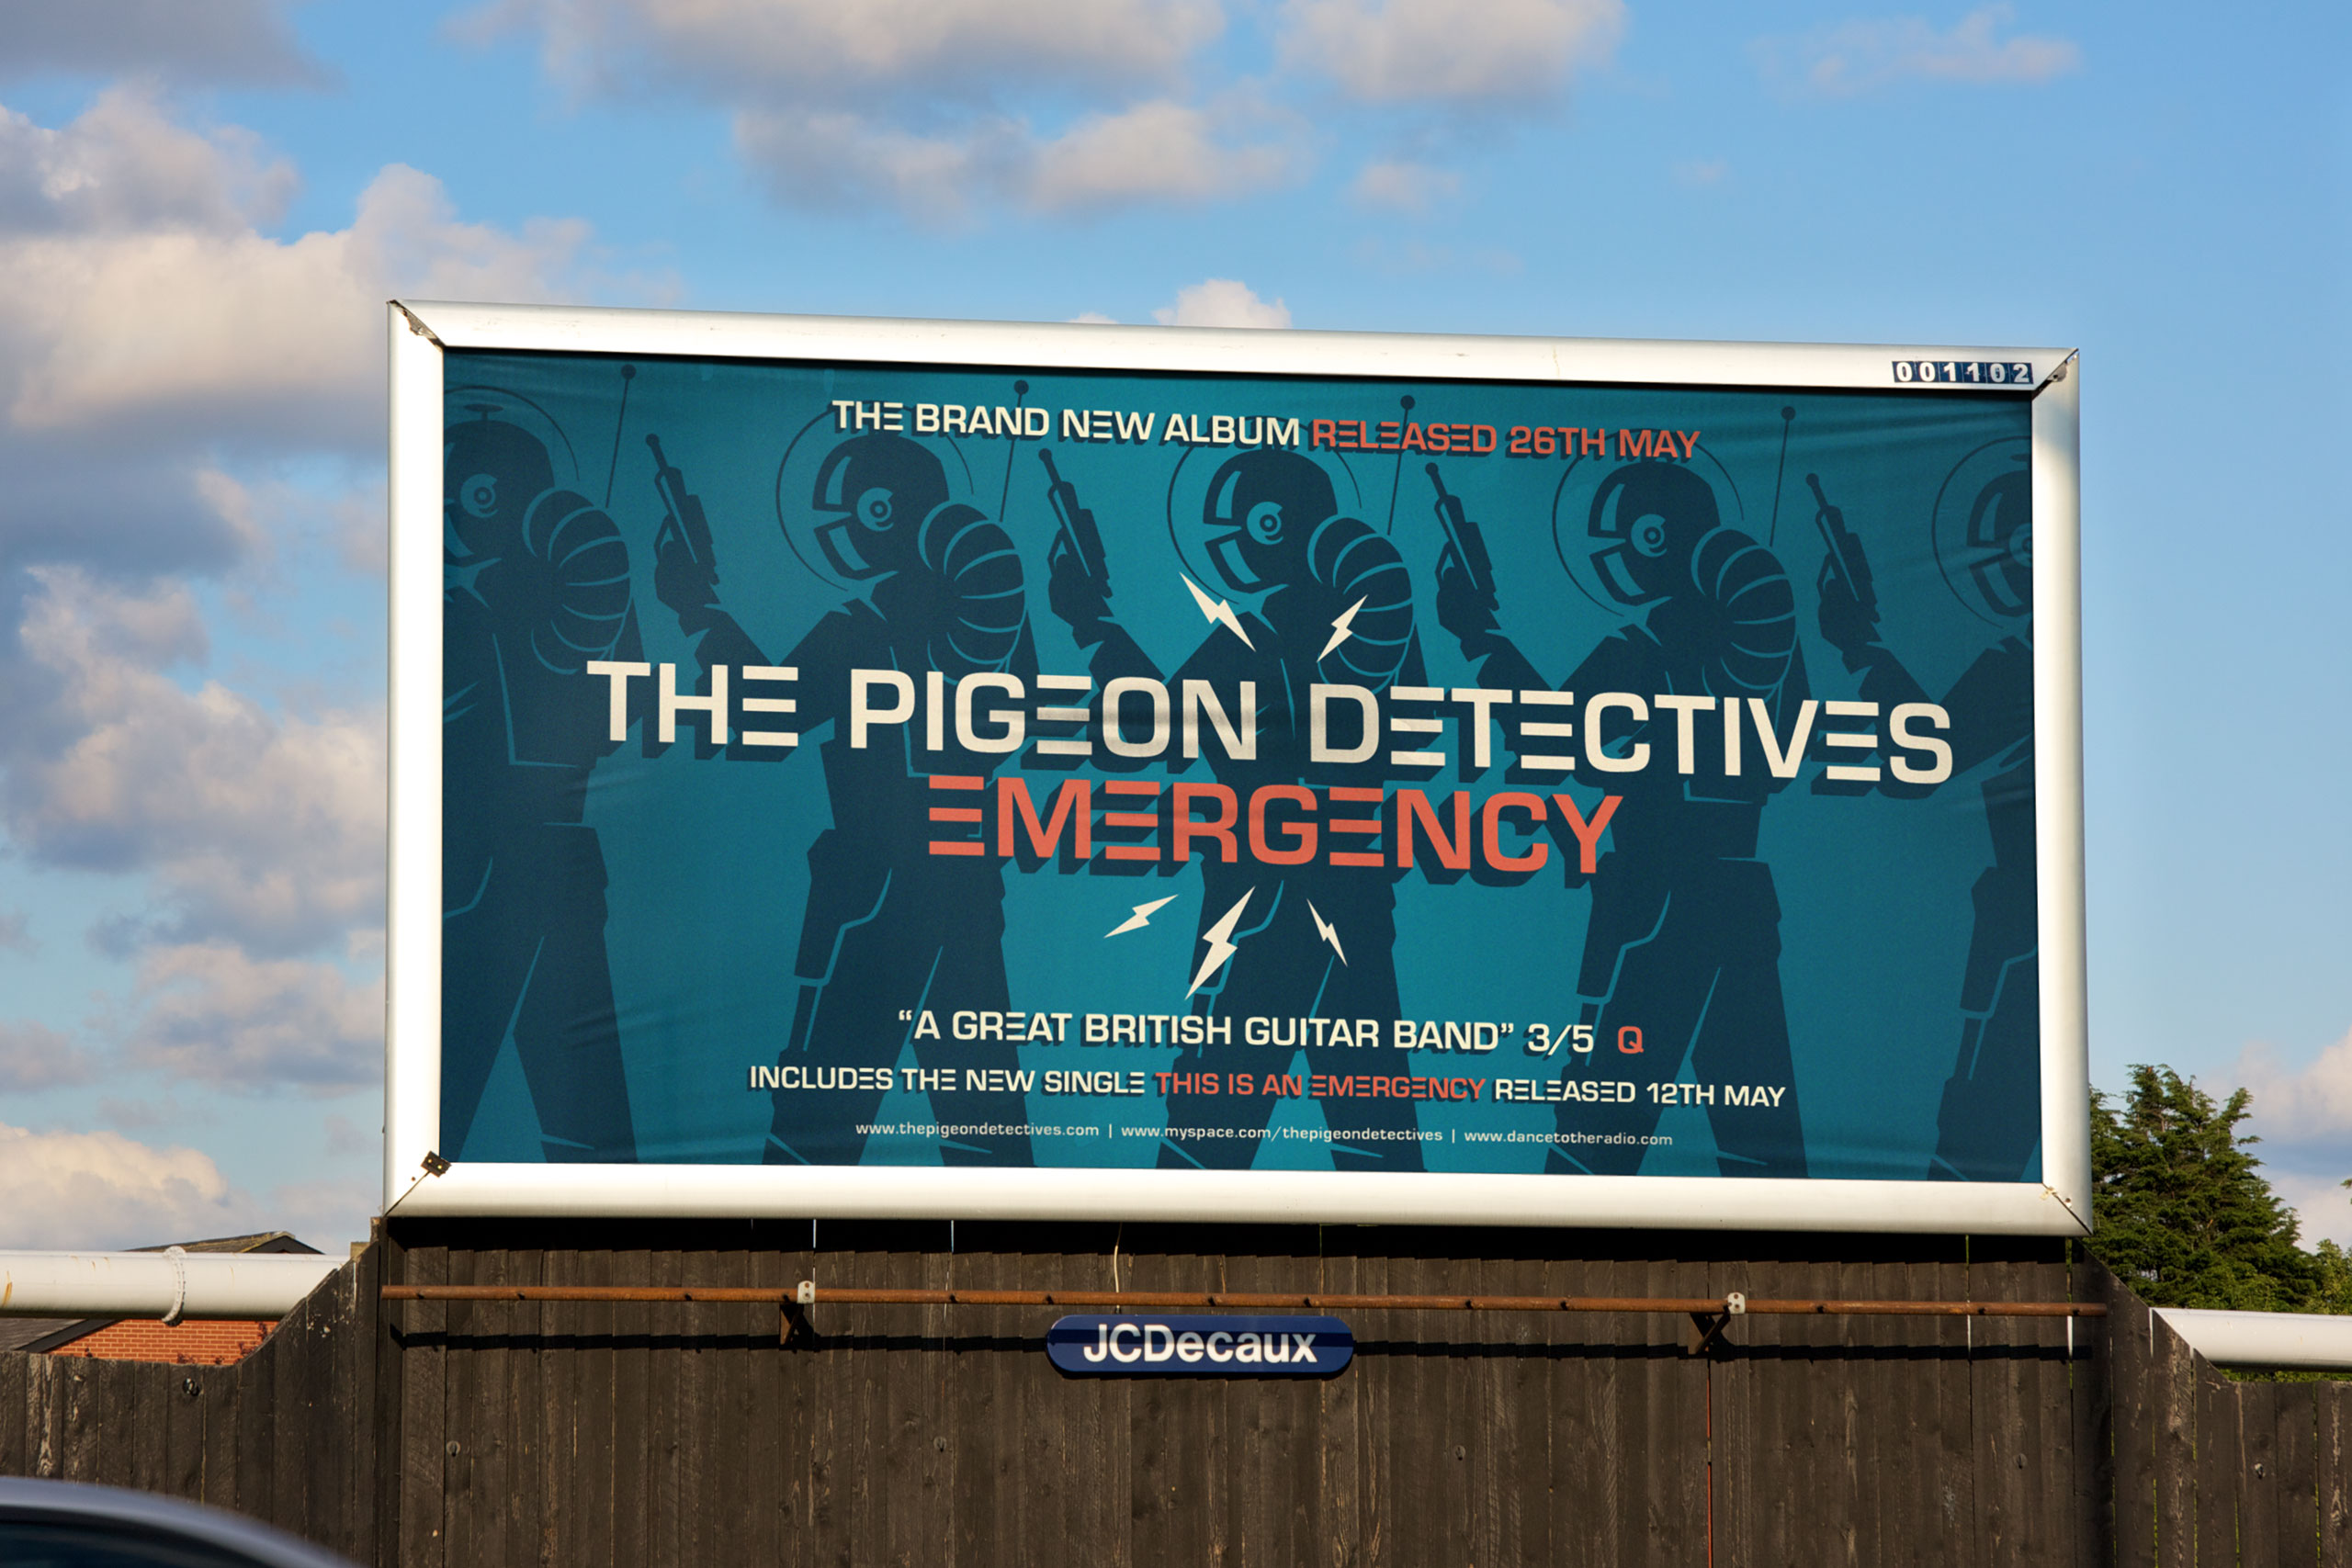 Emergency - The Pigeon Detectives Billboard by Dan Forster